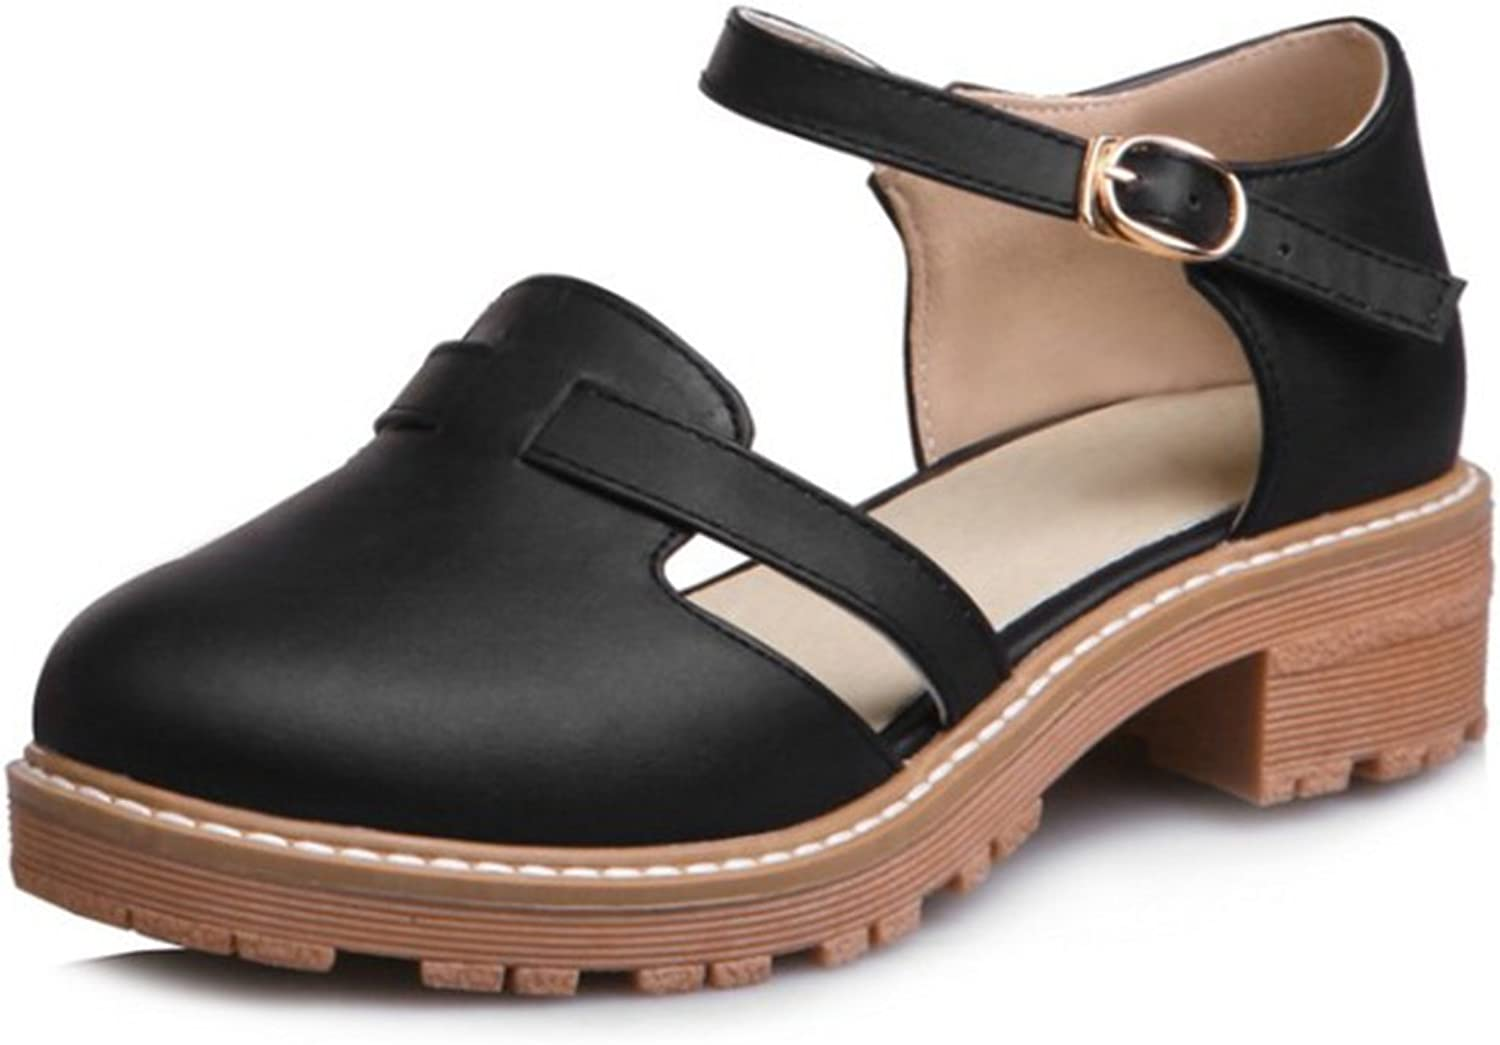 IDIFU Women's Casual Hollow Out Chunky Ankle Strap Pumps shoes Medium Heels